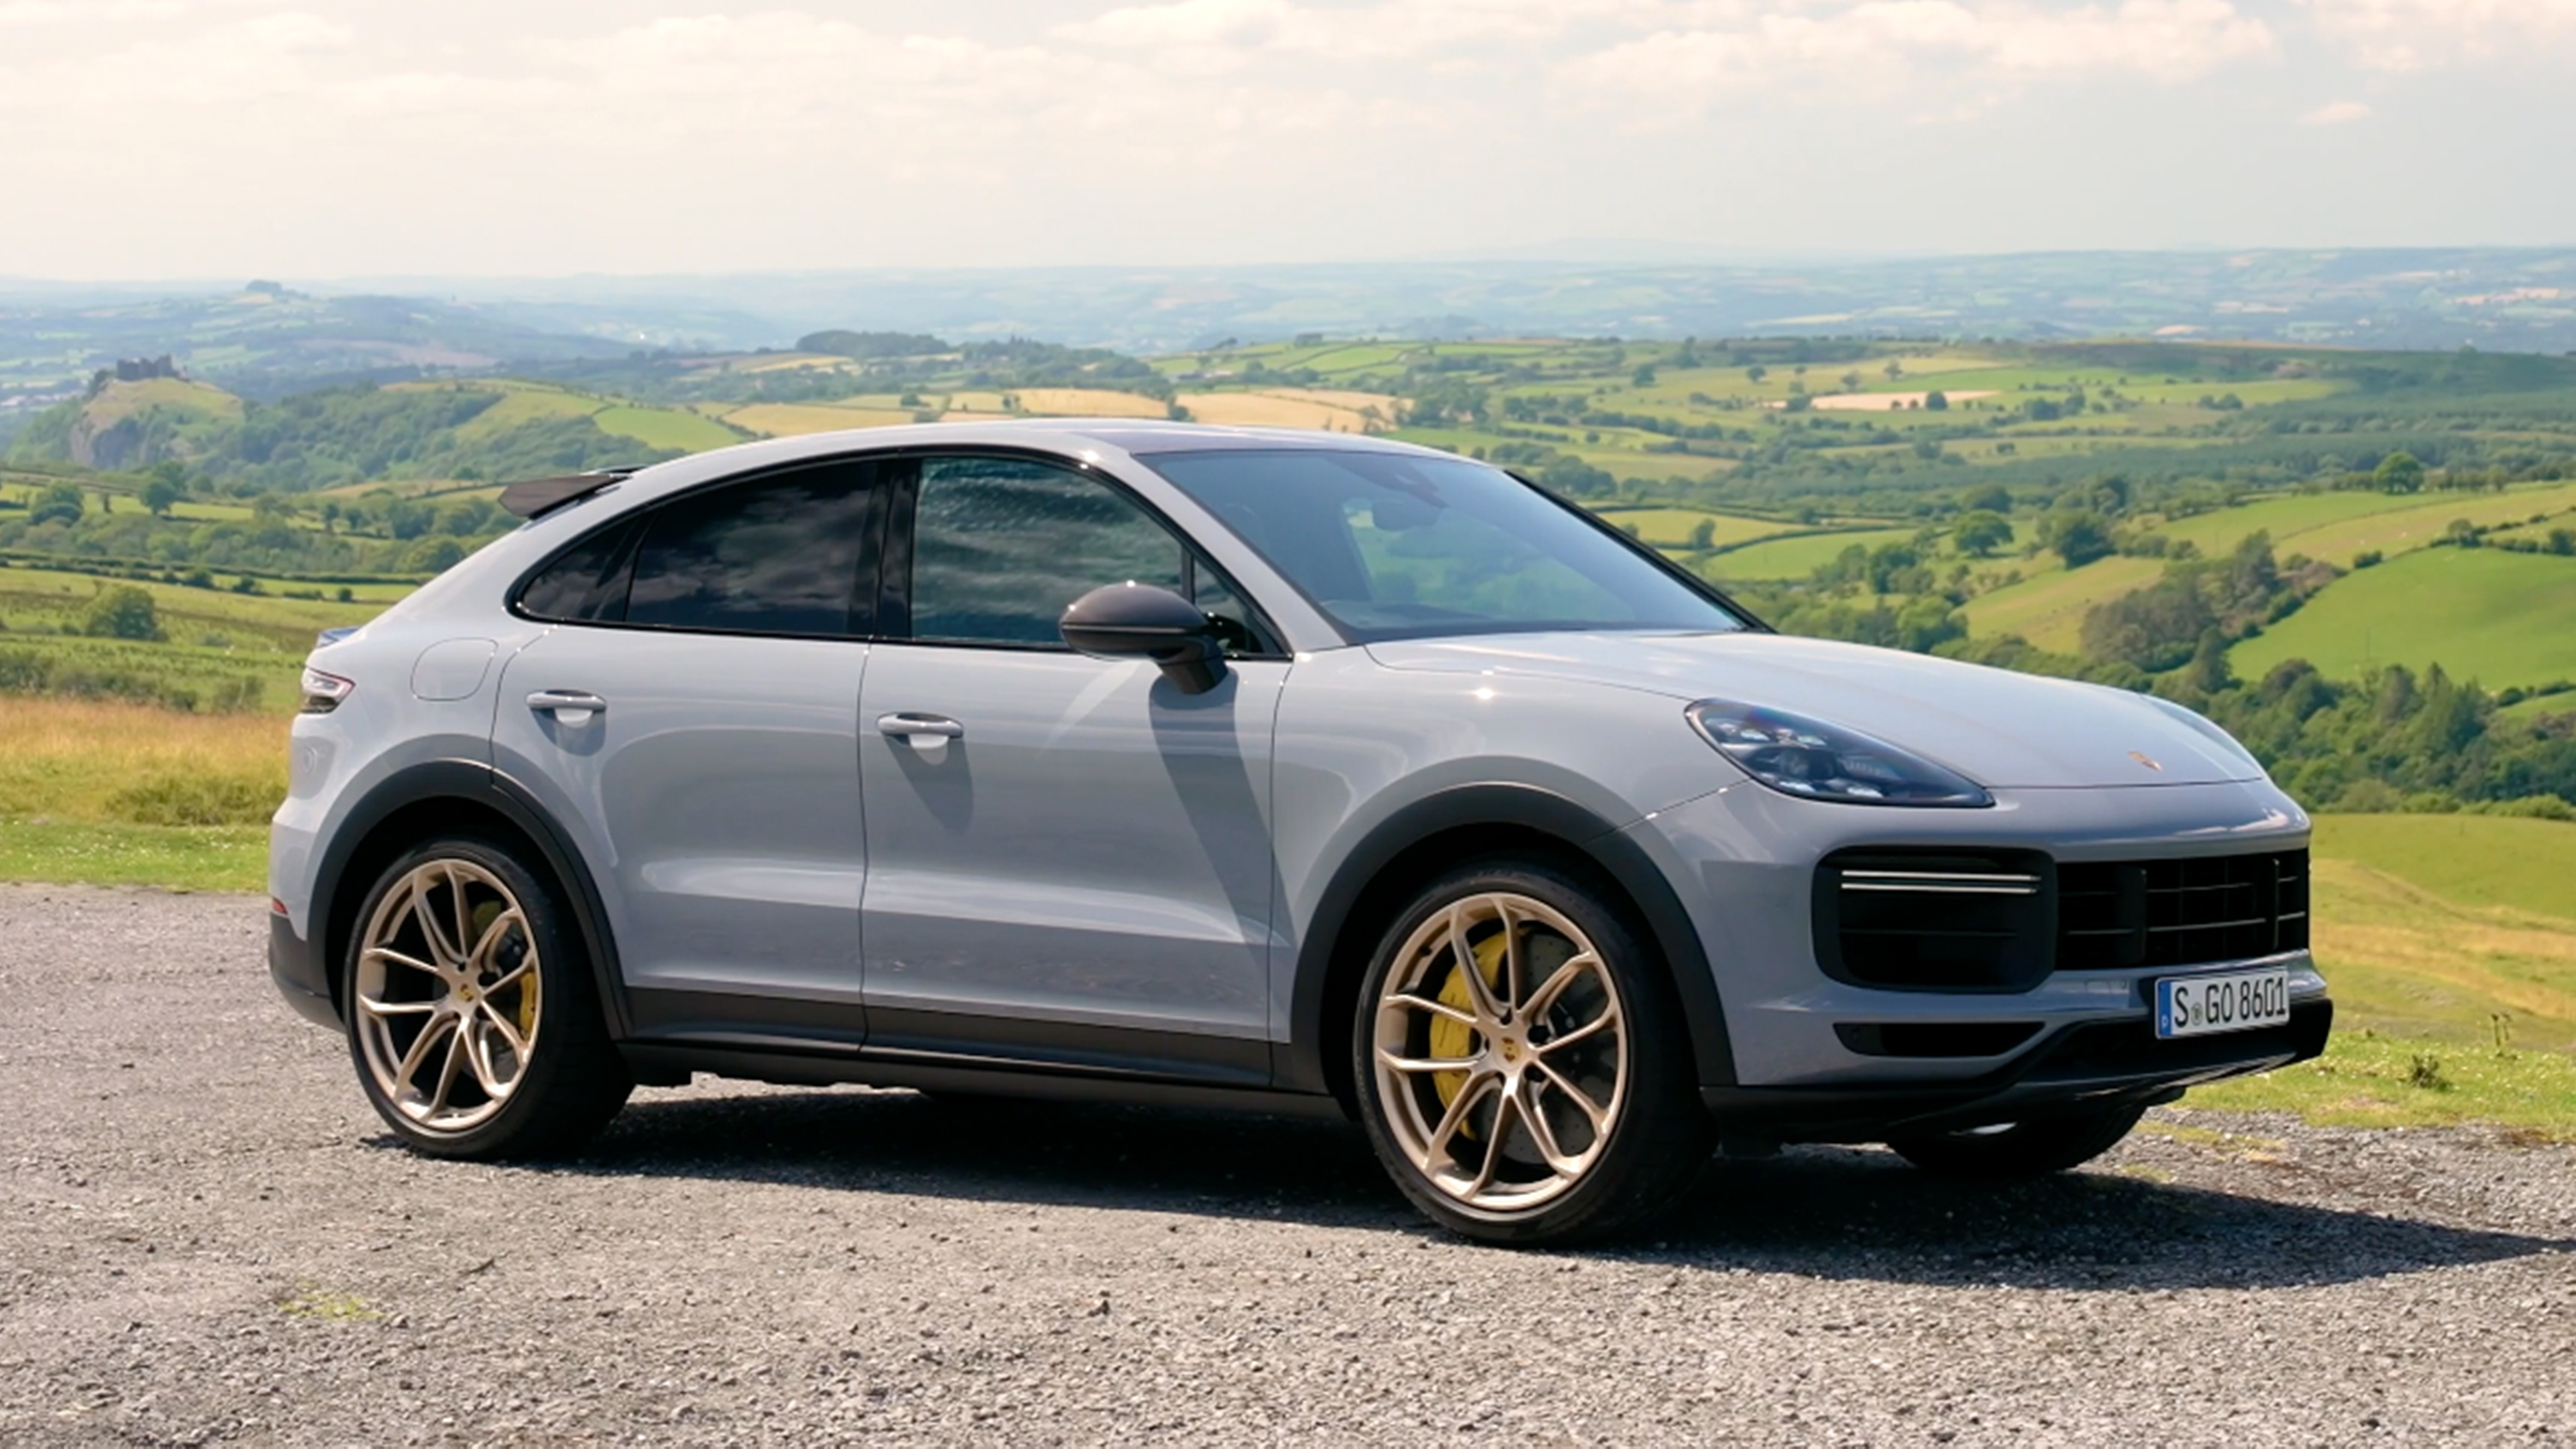 Video: The 2022 Porsche Cayenne Turbo GT continues to defy convention